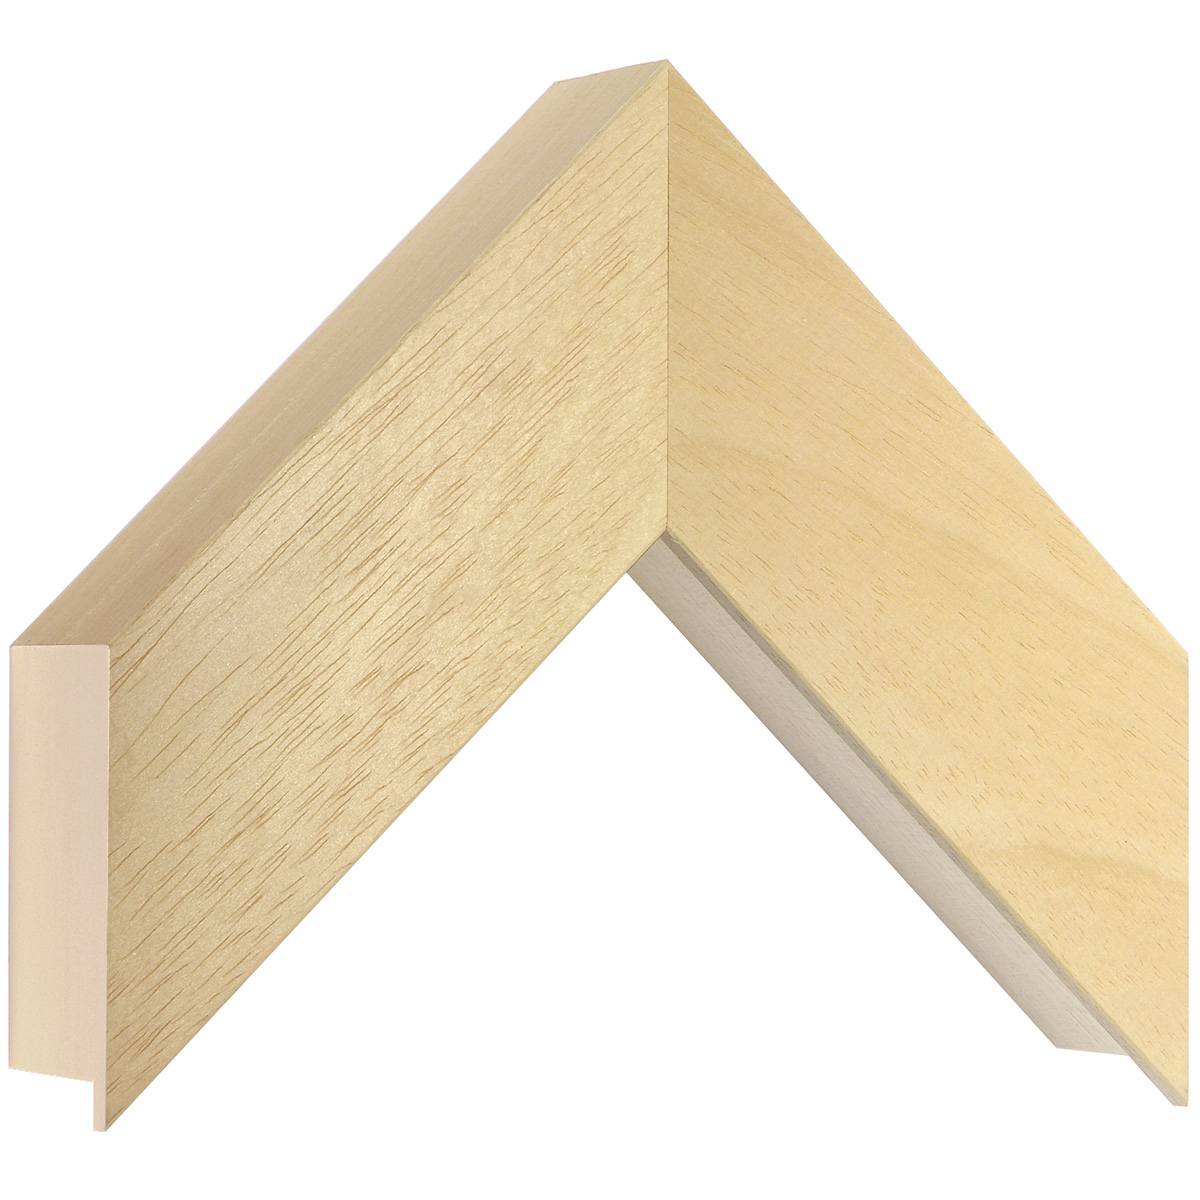 Moulding ayous, width 60mm, height 55mm, bare timber